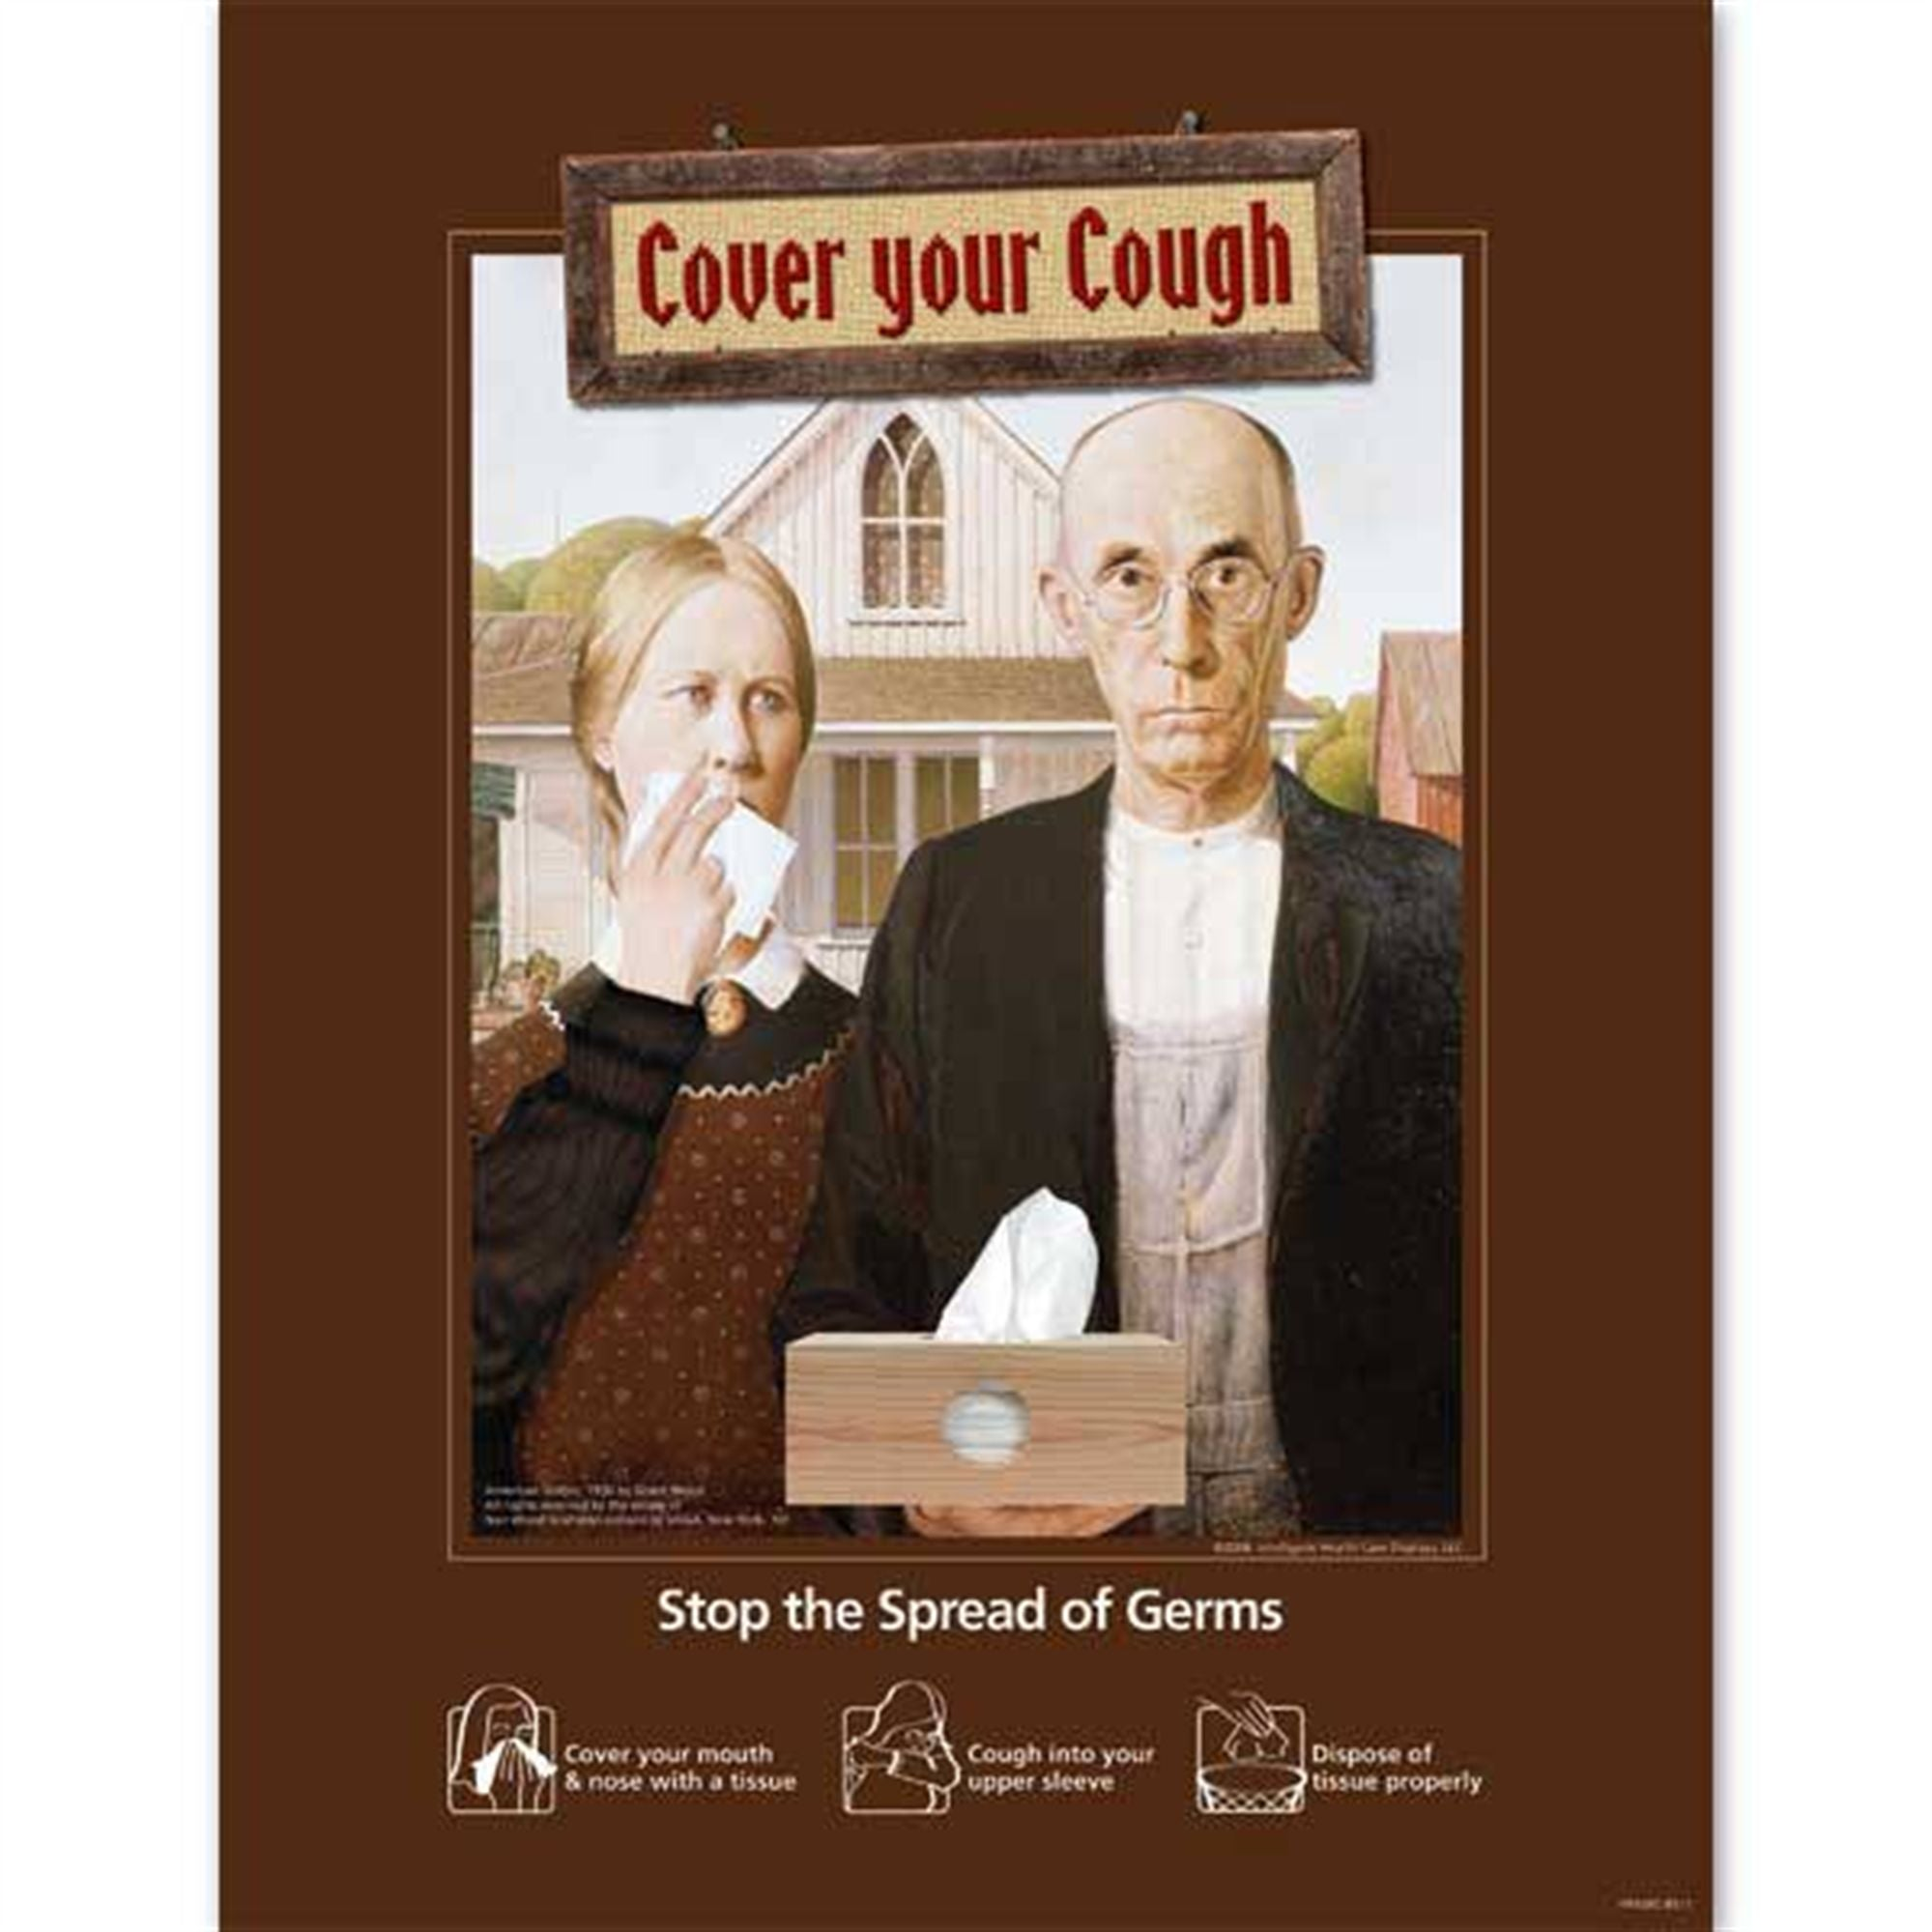 American Gothic-Themed Cough Etiquette Poster